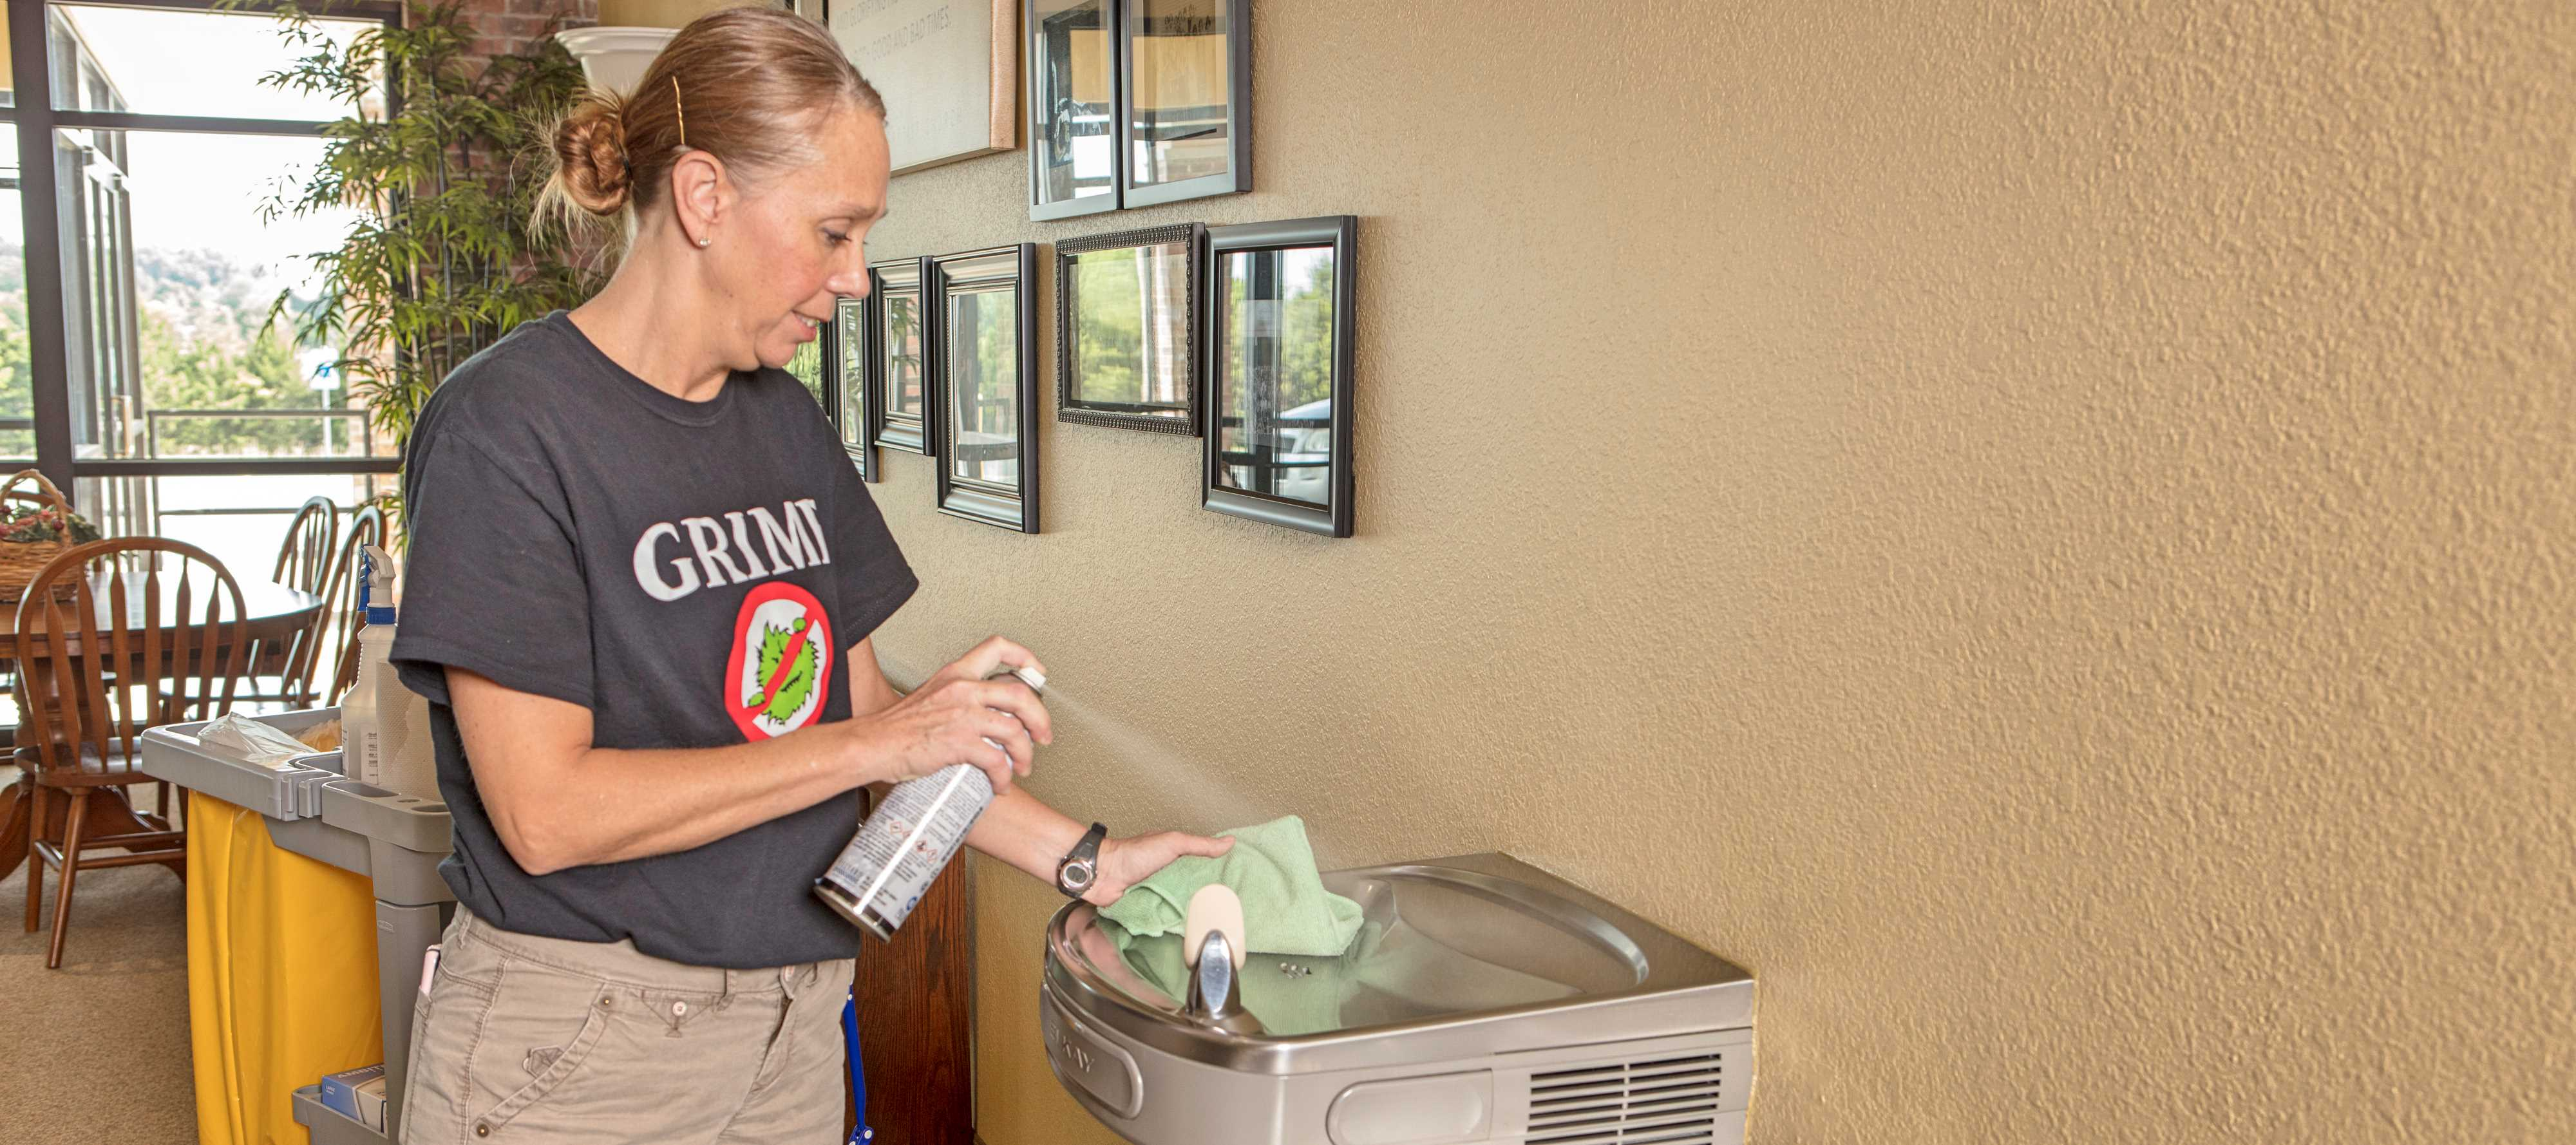 Janitorial Services in Springfield Missouri - Grime Scrubbers